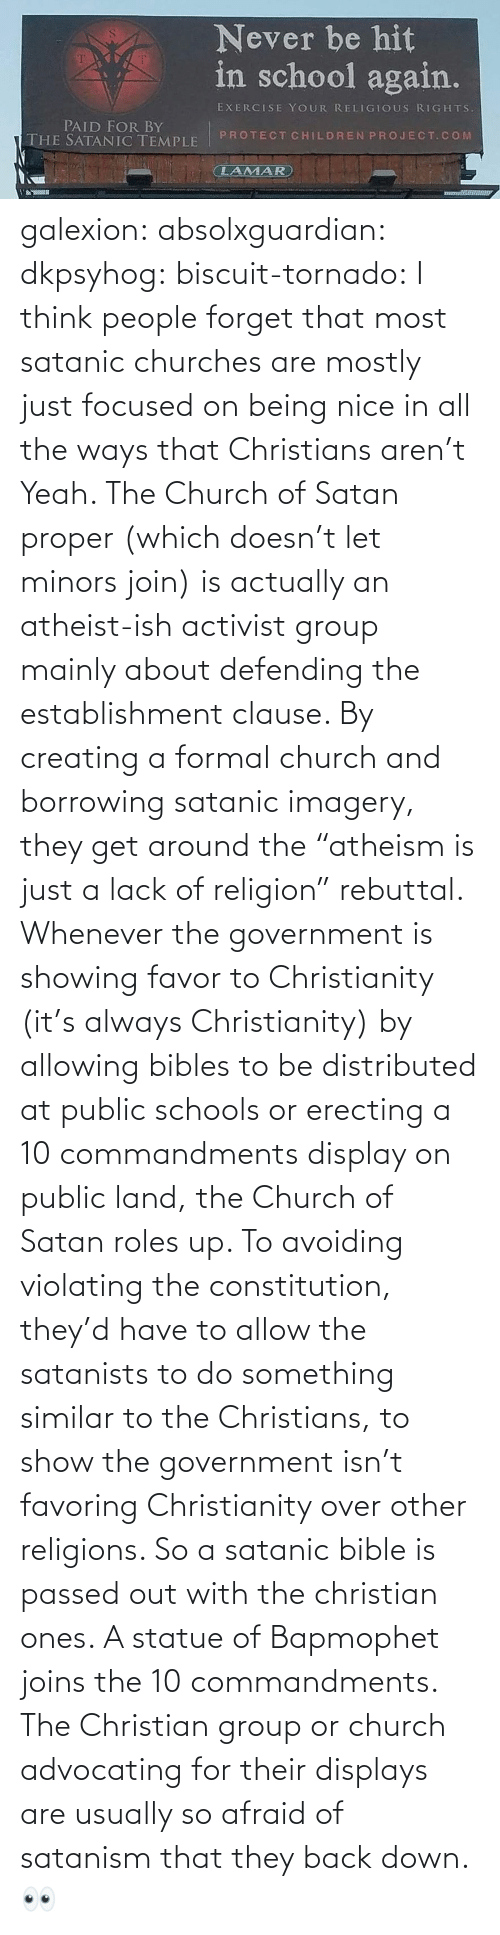 "Religion: galexion:  absolxguardian:  dkpsyhog:  biscuit-tornado:     I think people forget that most satanic churches are mostly just focused on being nice in all the ways that Christians aren't  Yeah. The Church of Satan proper (which doesn't let minors join) is actually an atheist-ish activist group mainly about defending the establishment clause. By creating a formal church and borrowing satanic imagery, they get around the ""atheism is just a lack of religion"" rebuttal. Whenever the government is showing favor to Christianity (it's always Christianity) by allowing bibles to be distributed at public schools or erecting a 10 commandments display on public land, the Church of Satan roles up. To avoiding violating the constitution, they'd have to allow the satanists to do something similar to the Christians, to show the government isn't favoring Christianity over other religions. So a satanic bible is passed out with the christian ones. A statue of Bapmophet joins the 10 commandments. The Christian group or church advocating for their displays are usually so afraid of satanism that they back down.   👀"